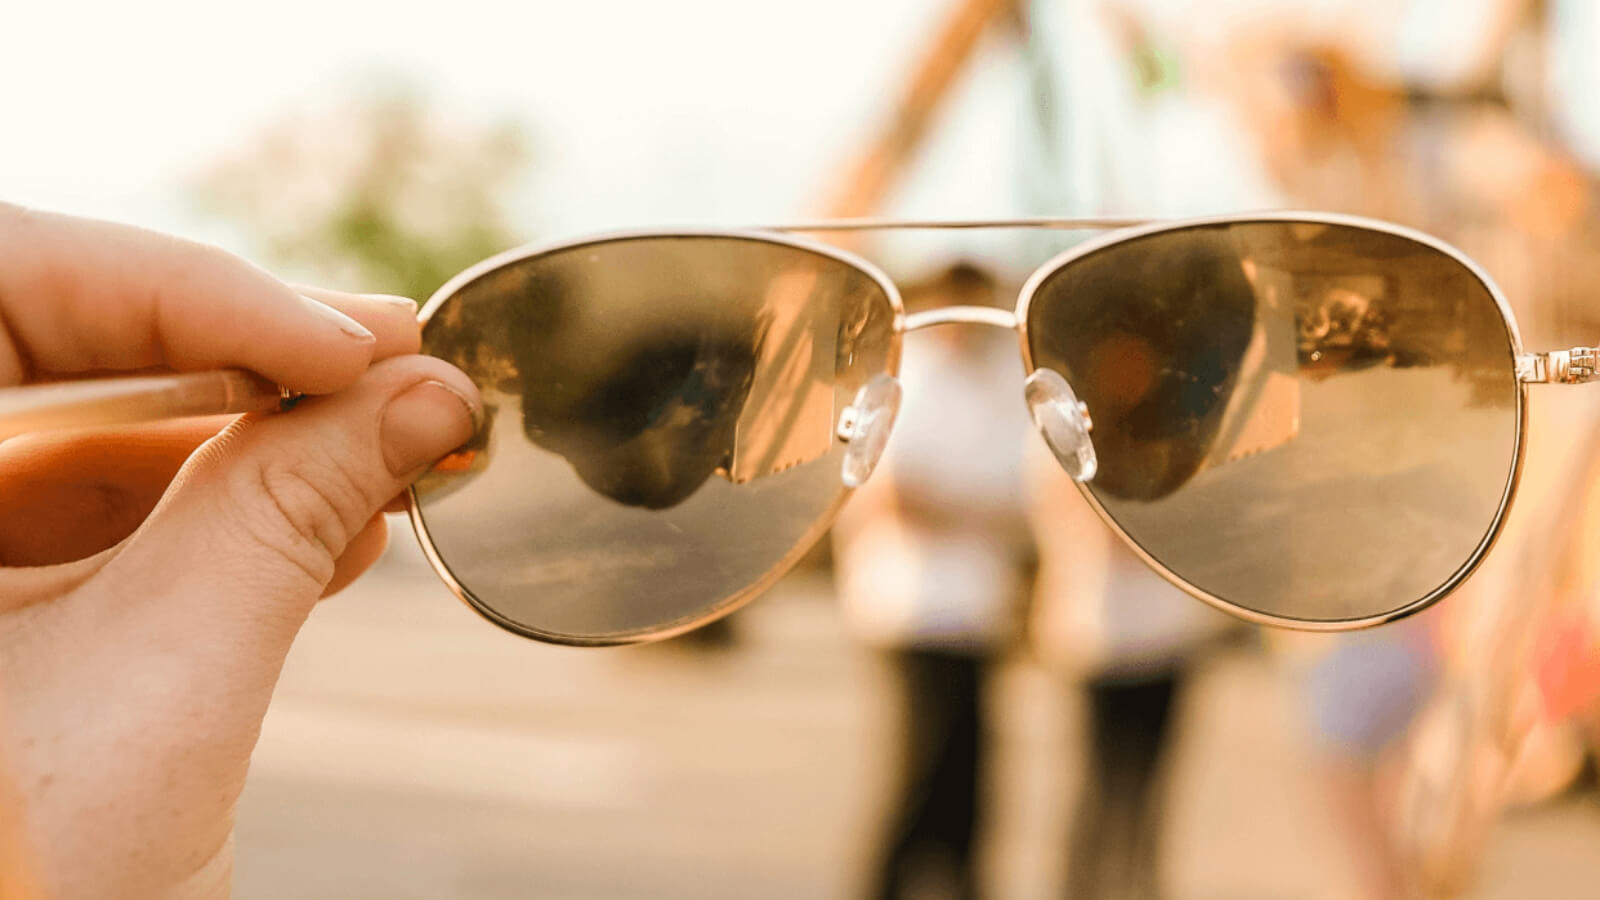 How can you tell if sunglasses are UV protected